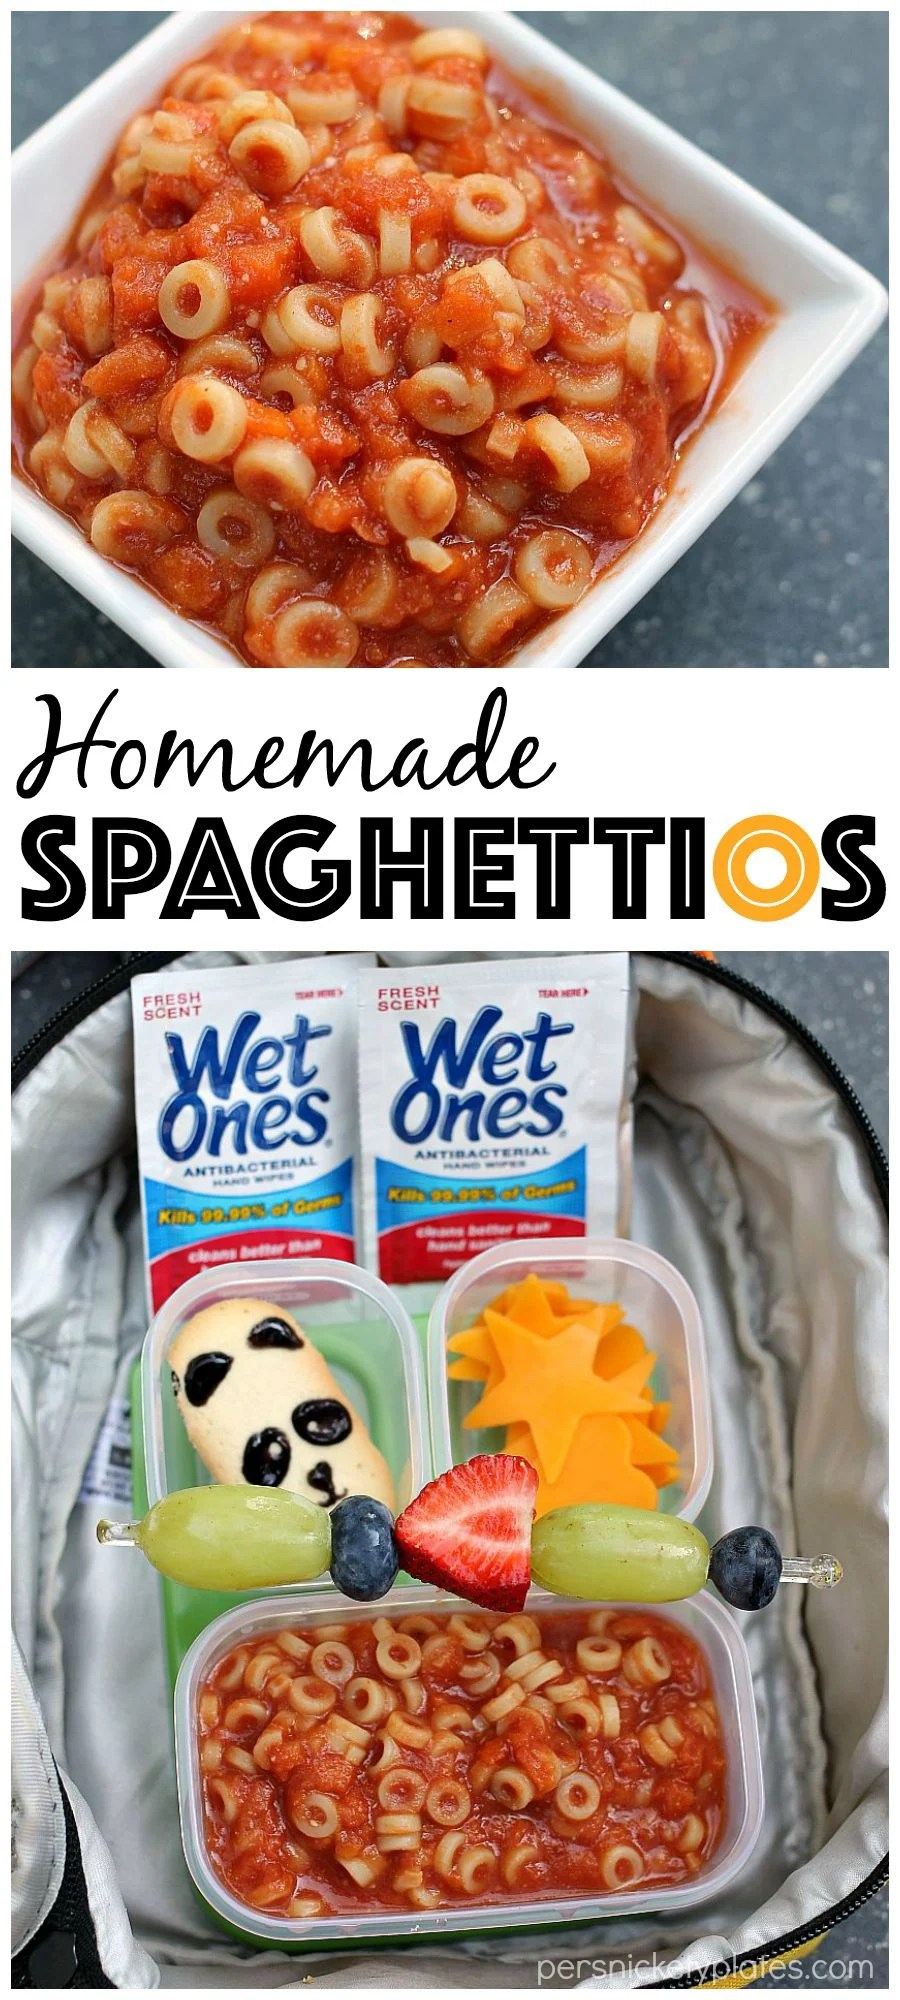 Homemade Spaghettios & Lunchbox Ideas for back to school | Persnickety Plates via @pplates